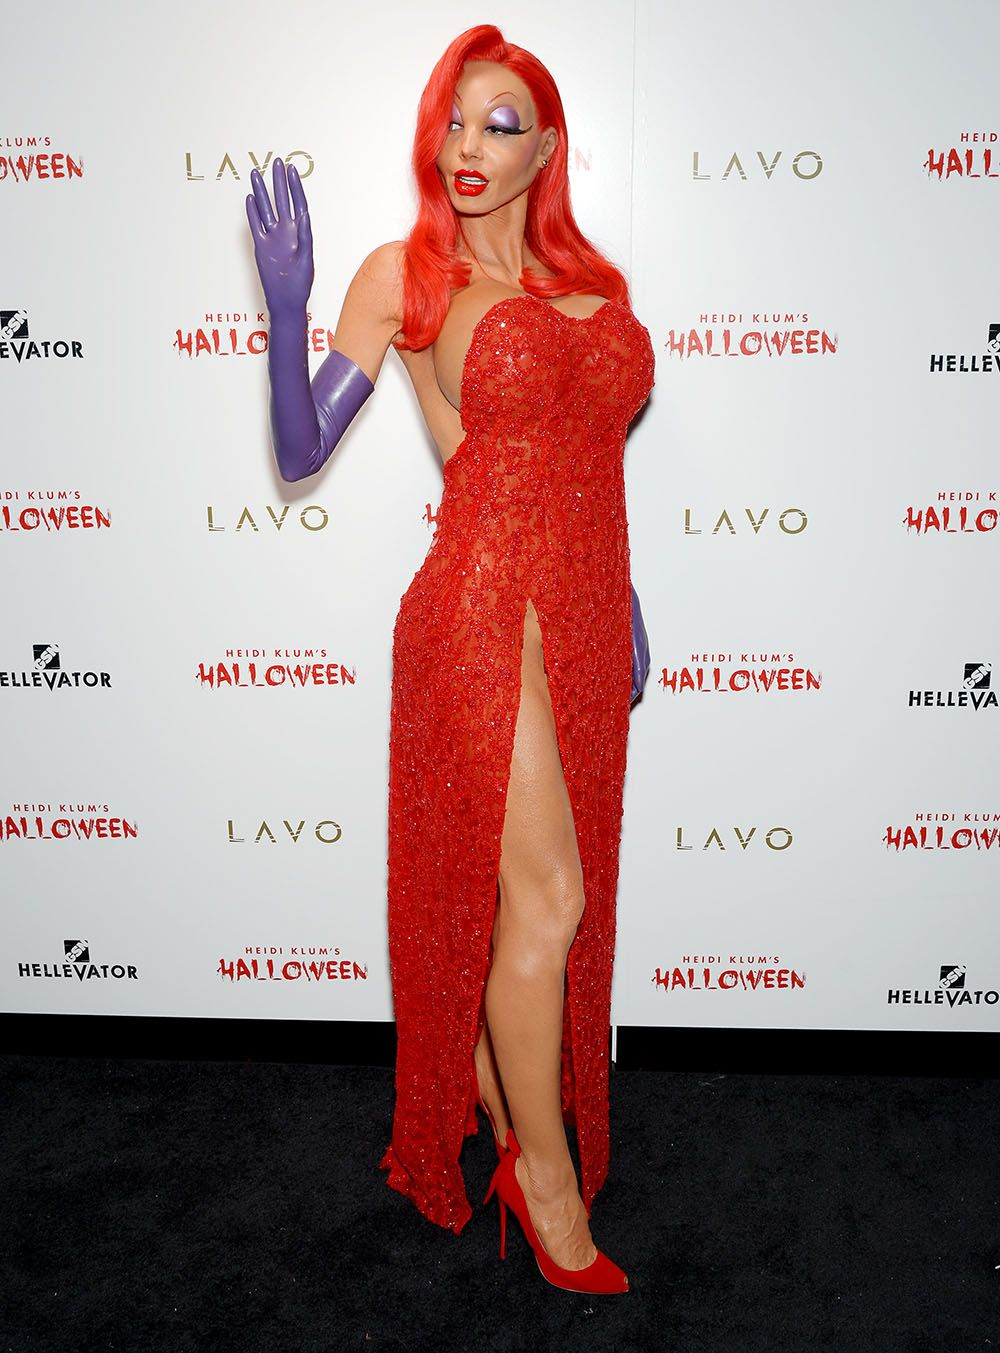 Heidi Klum's Jessica Rabbit costume was completely amazing.